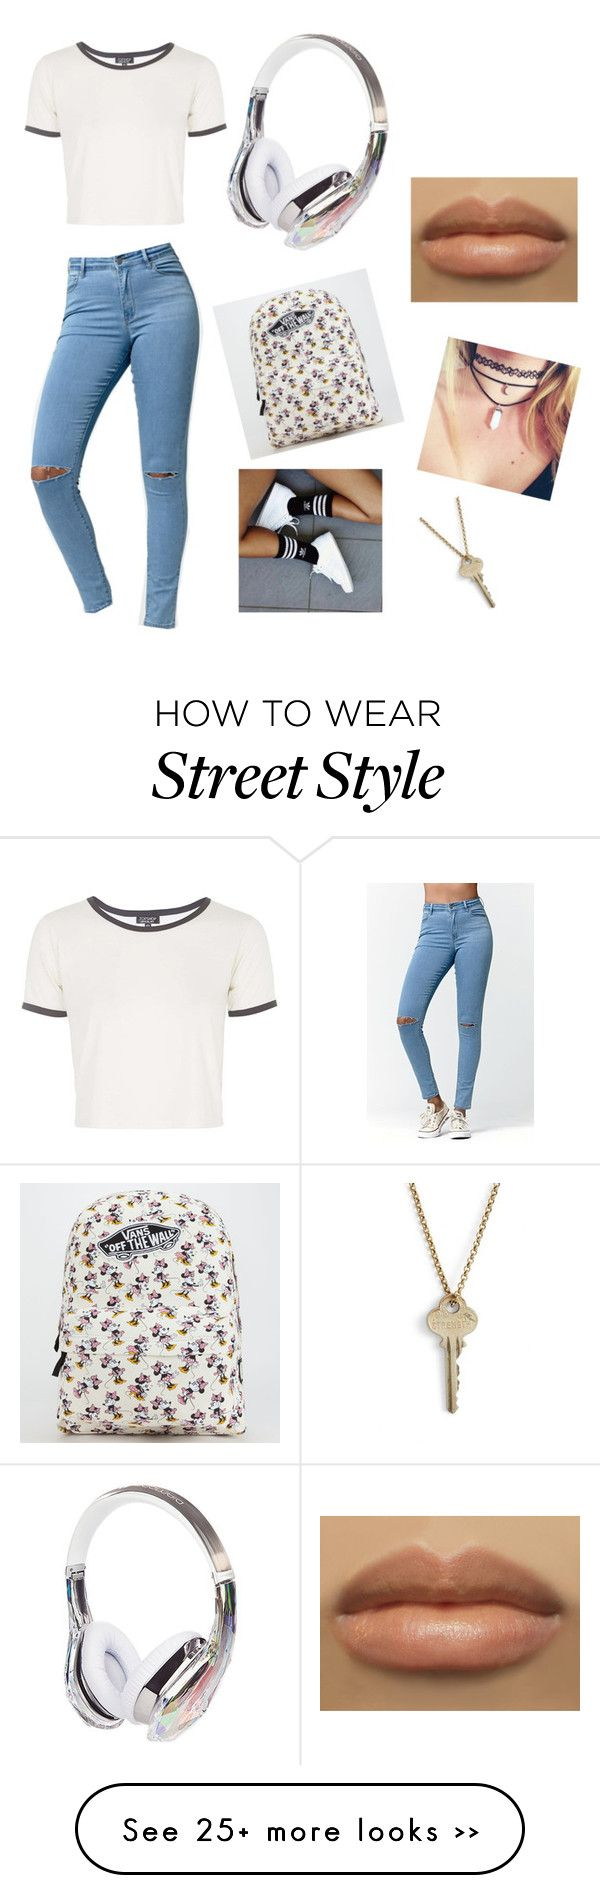 """""""Street style"""" by heartslove-791 on Polyvore featuring Topshop, Bullhead Denim Co., adidas, Vans and The Giving Keys"""